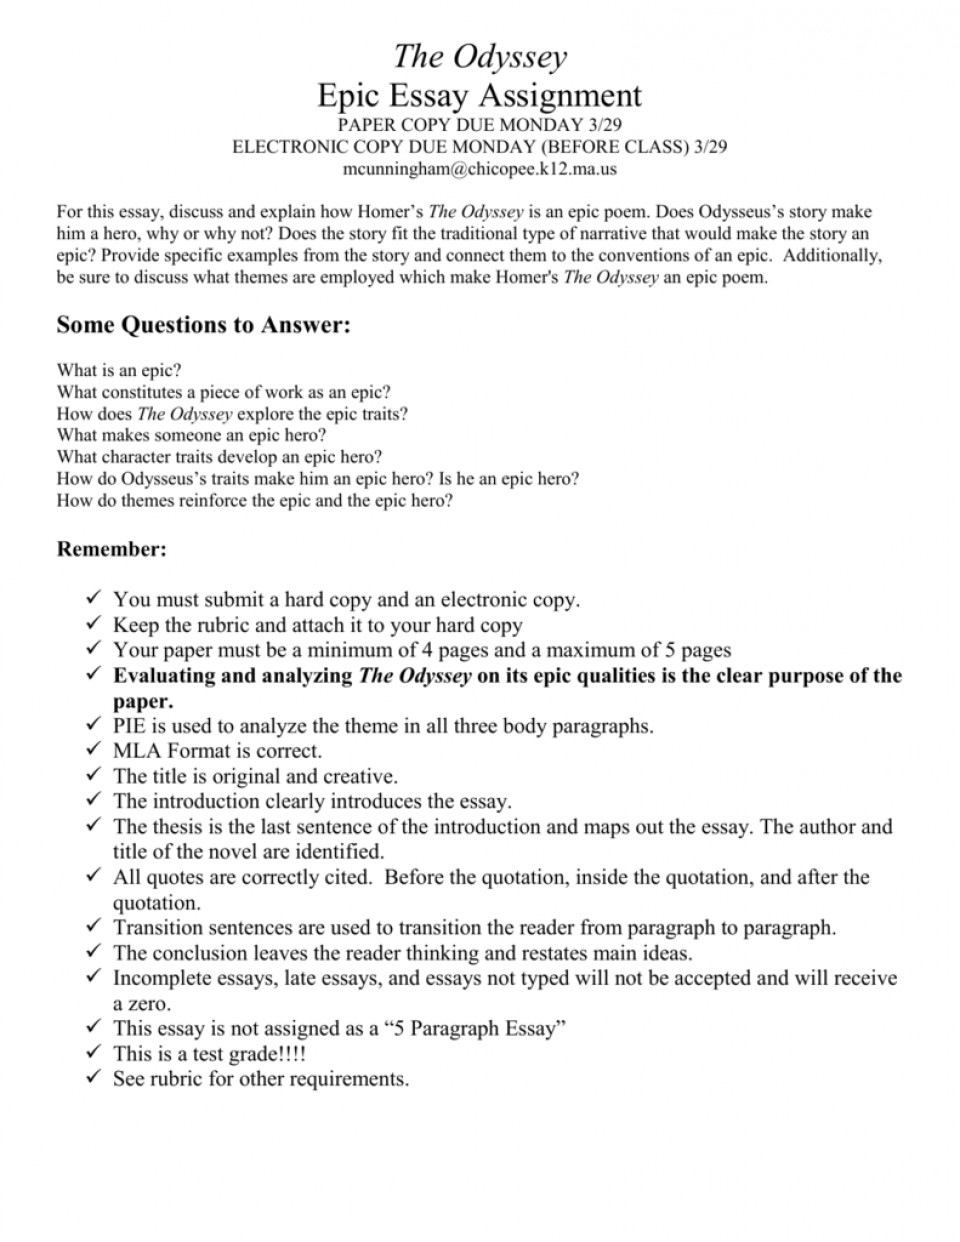 003 Odyssey Essay Topics 008040788 1 Amazing Prompt Prompts 960